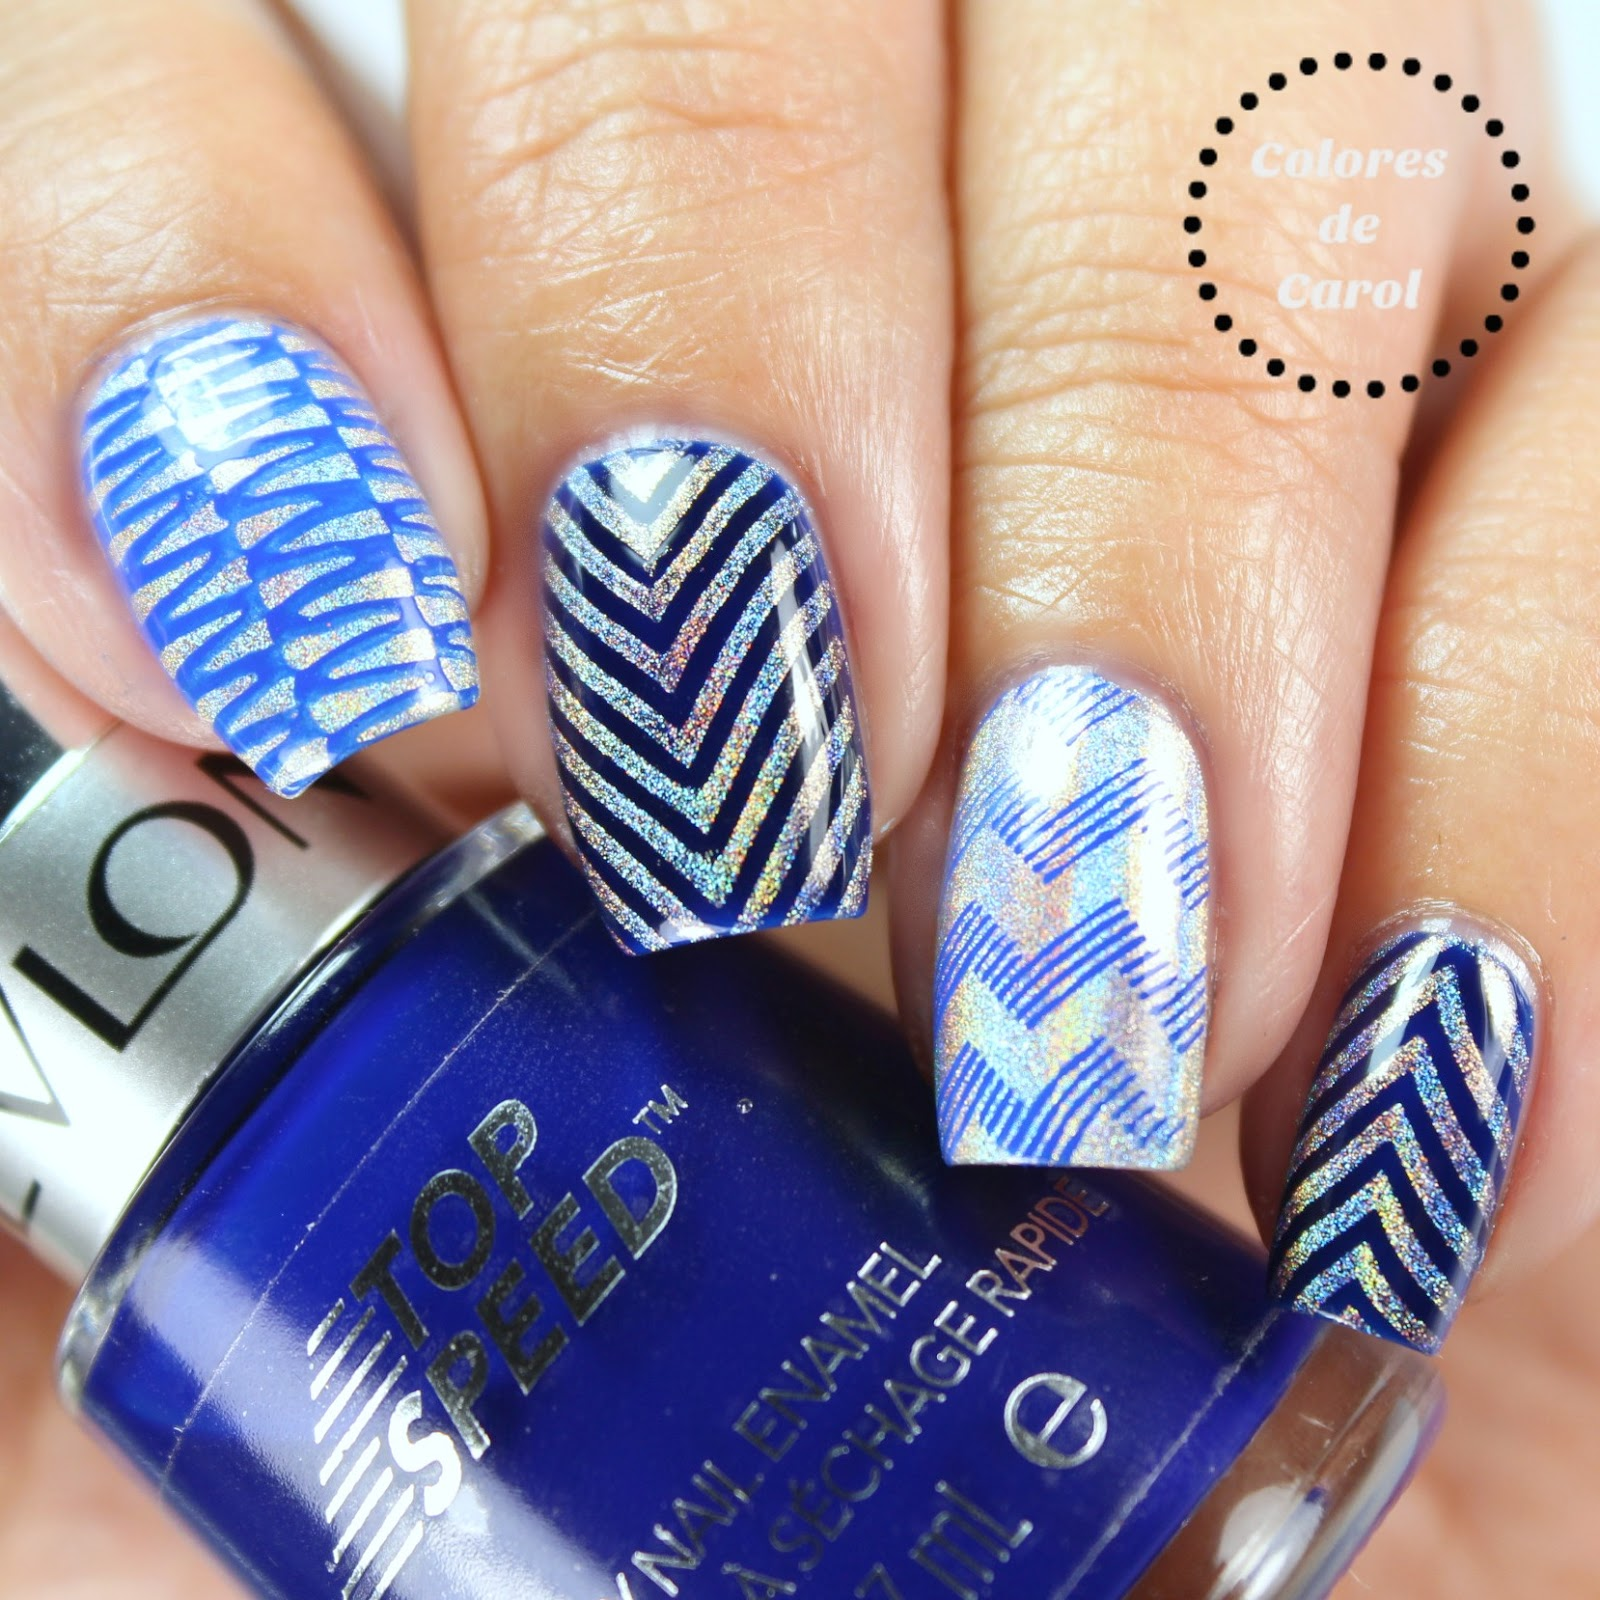 Nail art supplies store near me – Great photo blog about manicure 2017